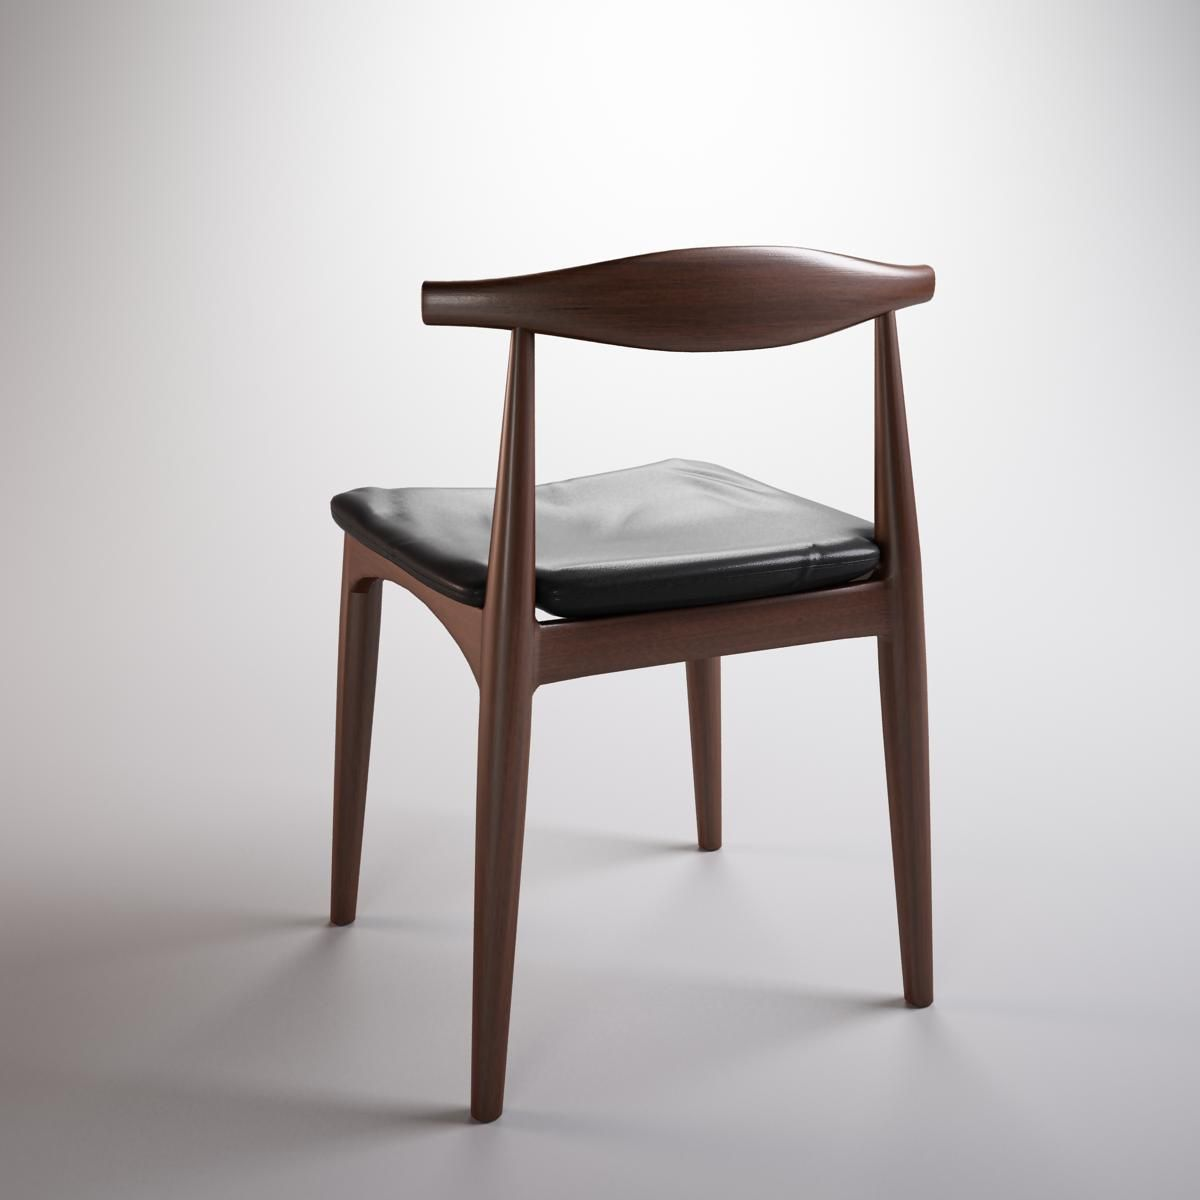 ... Chair Elbow 3d Model Max ...